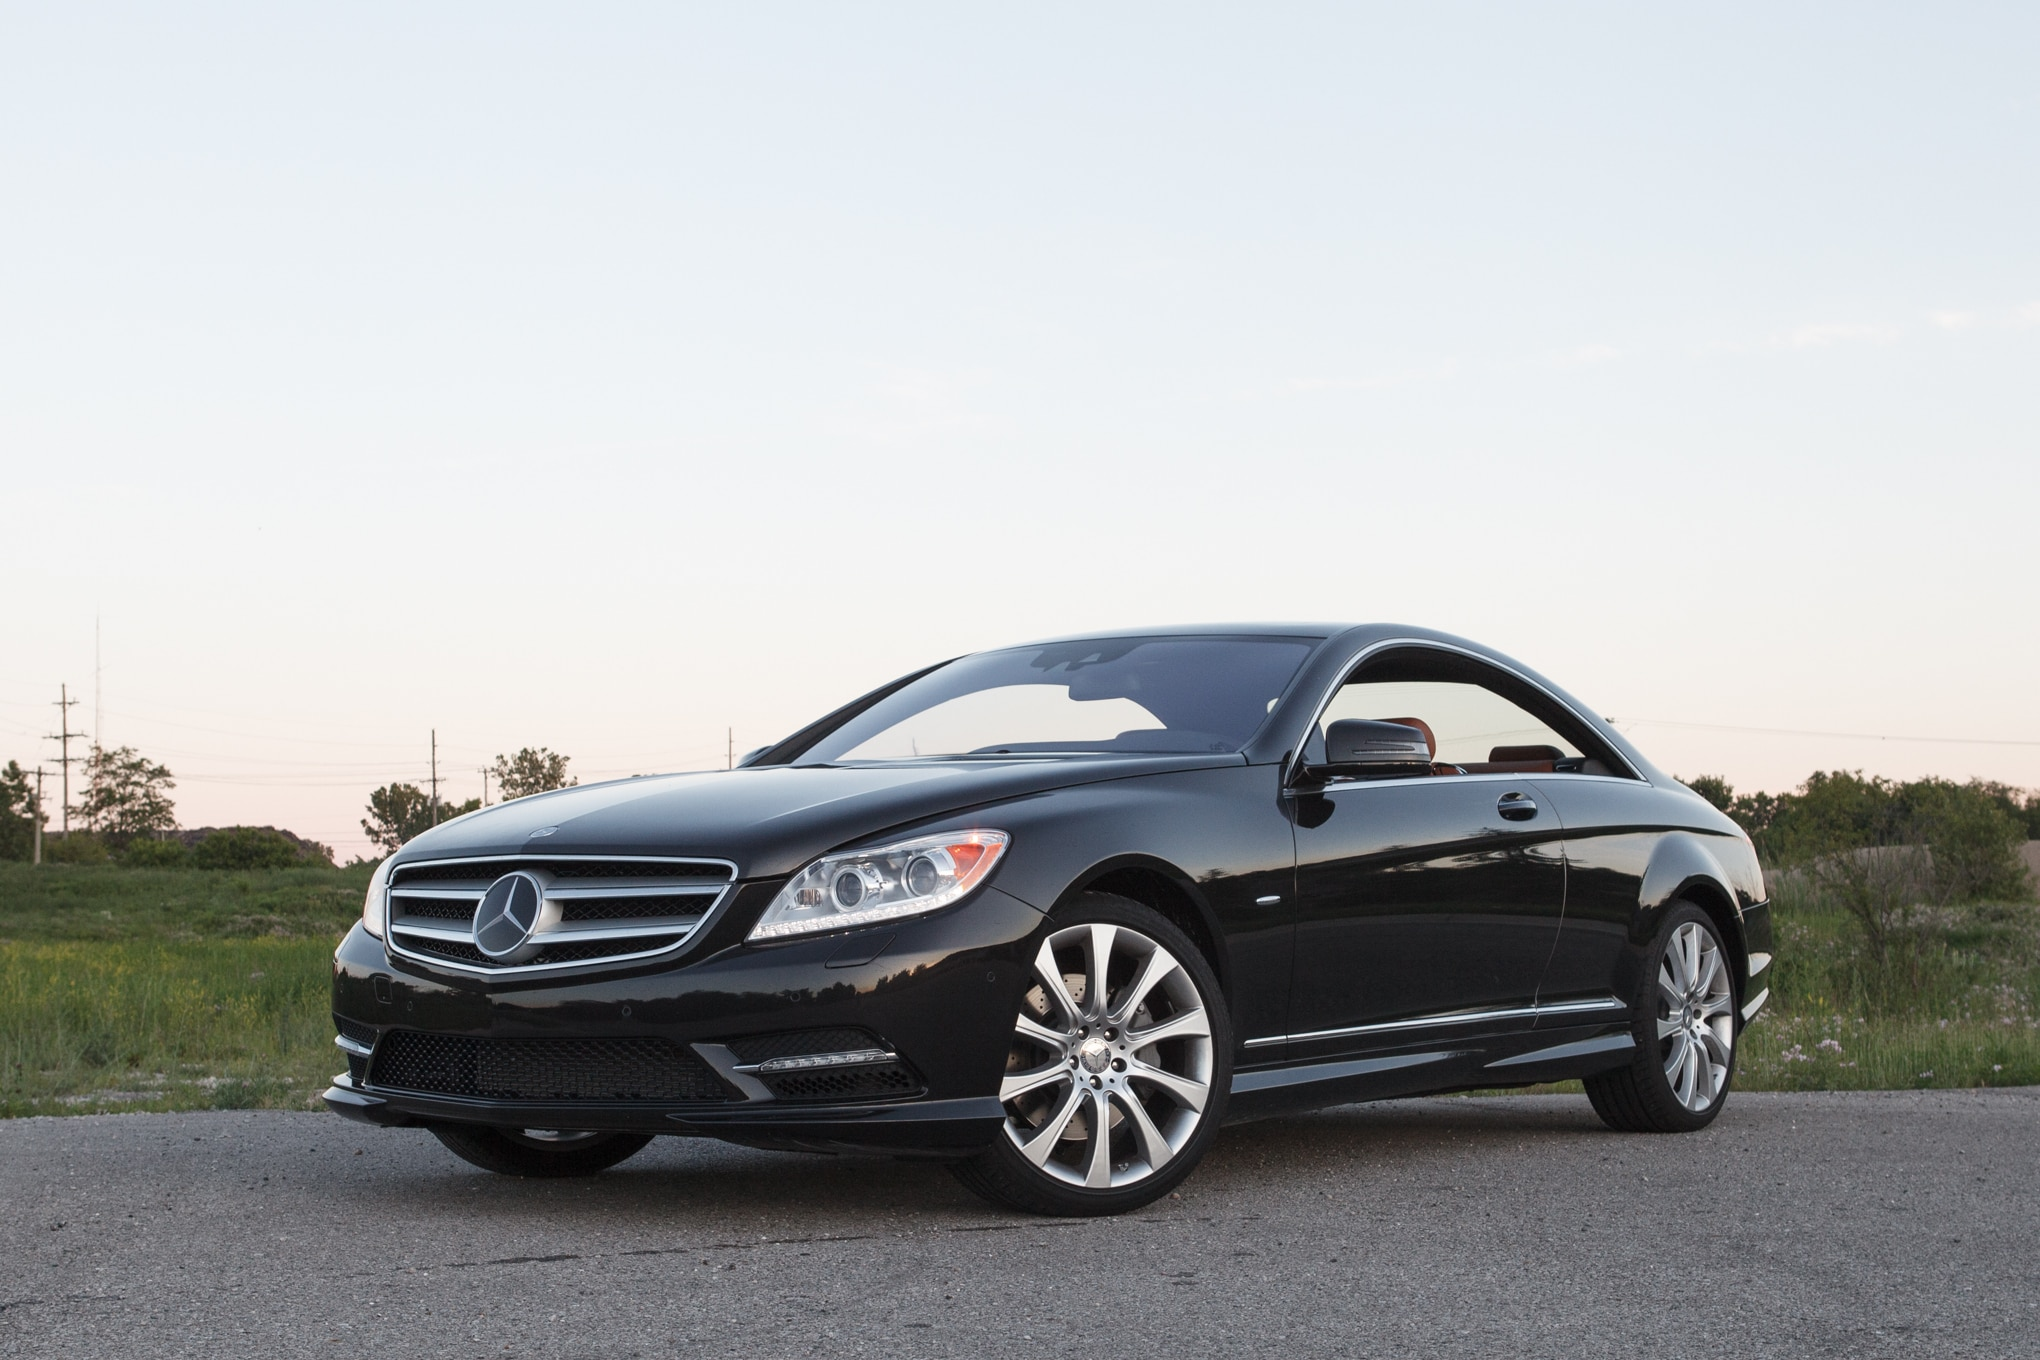 2013 Mercedes Benz CL550 Front Left Side View 11